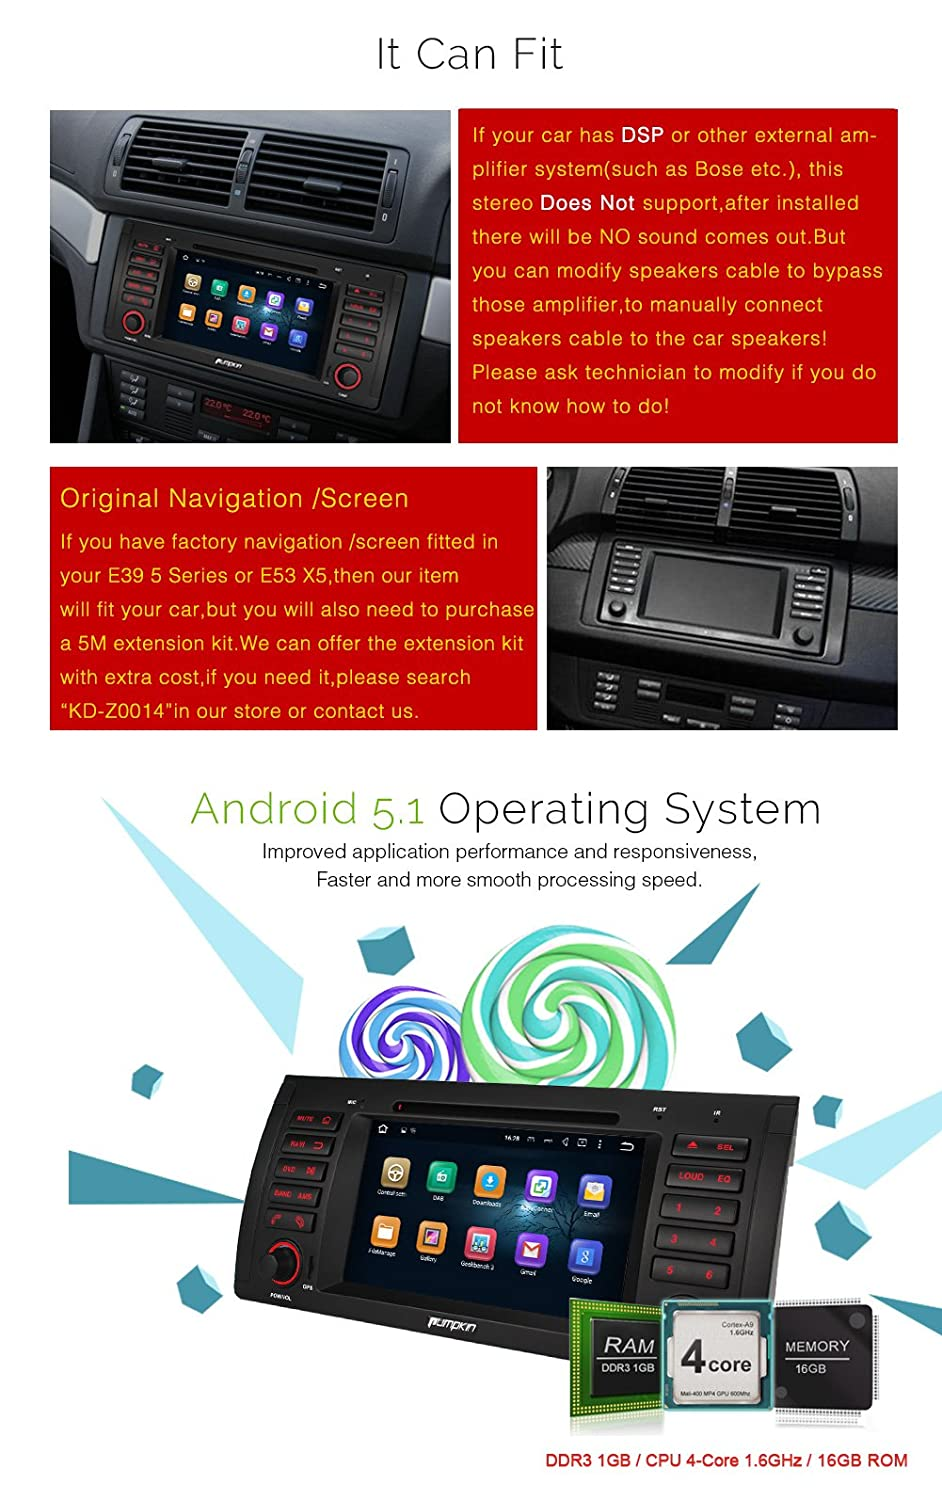 Pumpkin Android Car Stereo For Bmw E39 E53 5 2220 Bose Amplifier Wiring Diagram Electronics